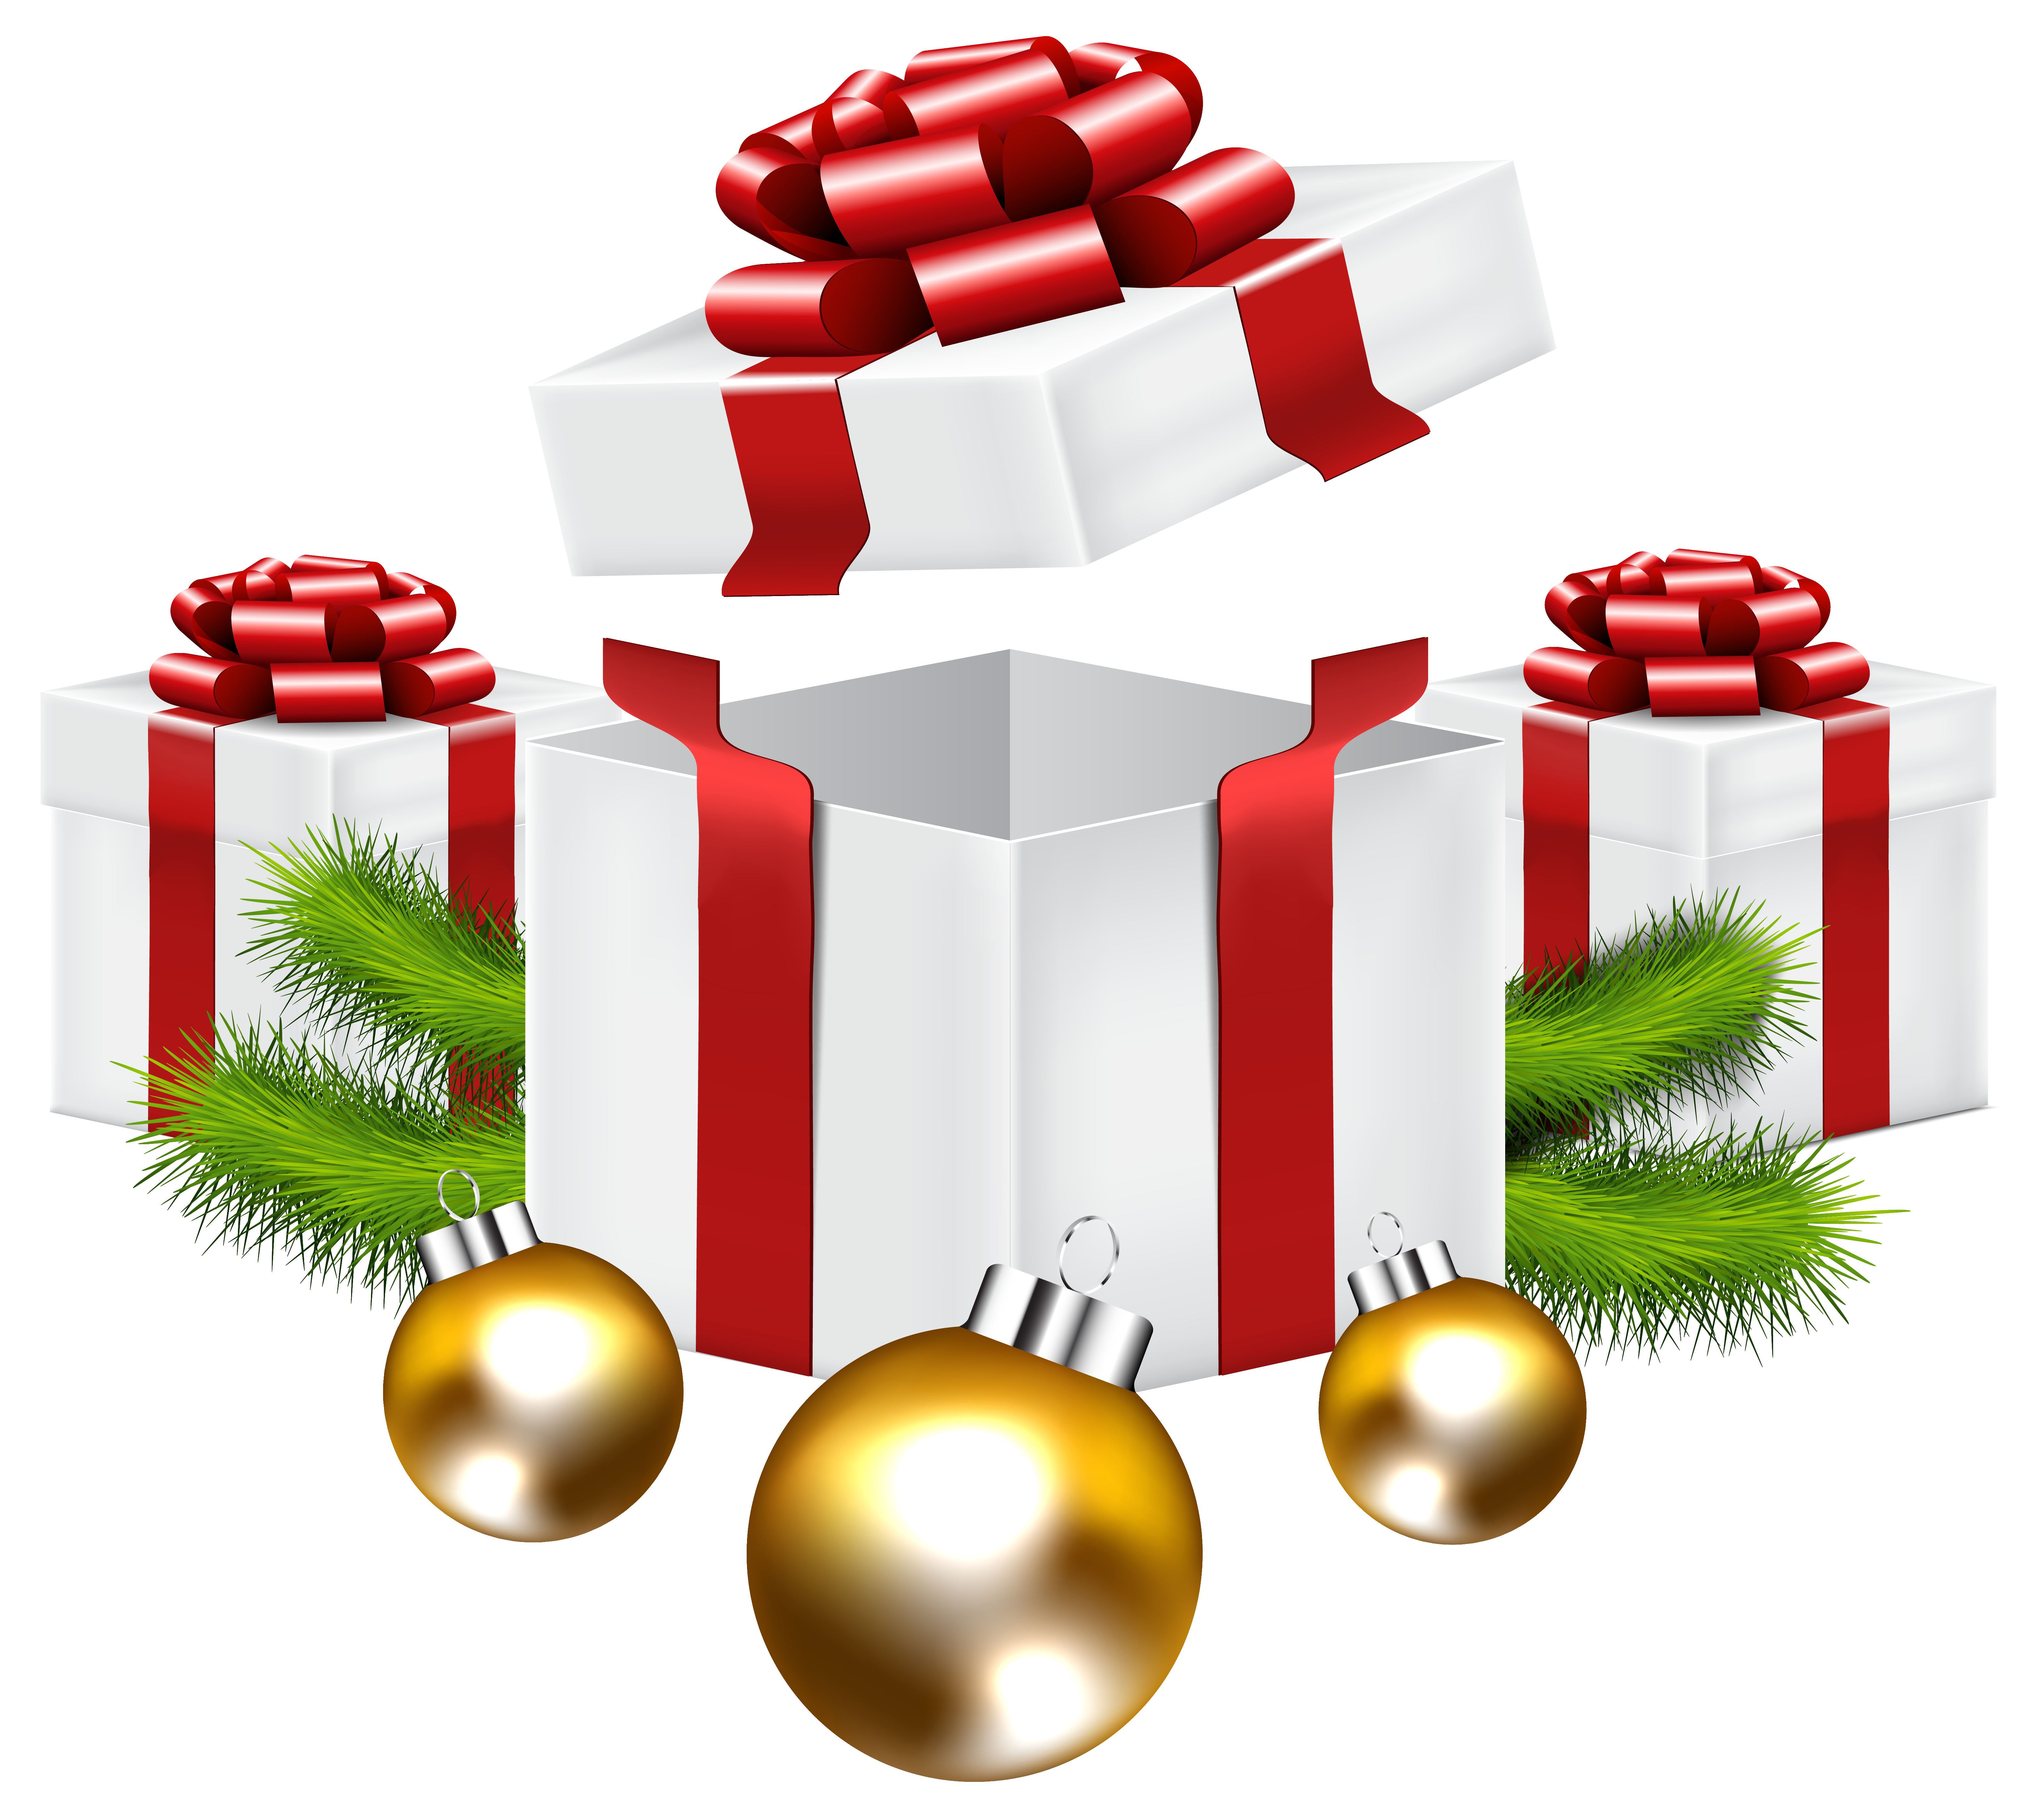 Christmas gifts picture clipart best